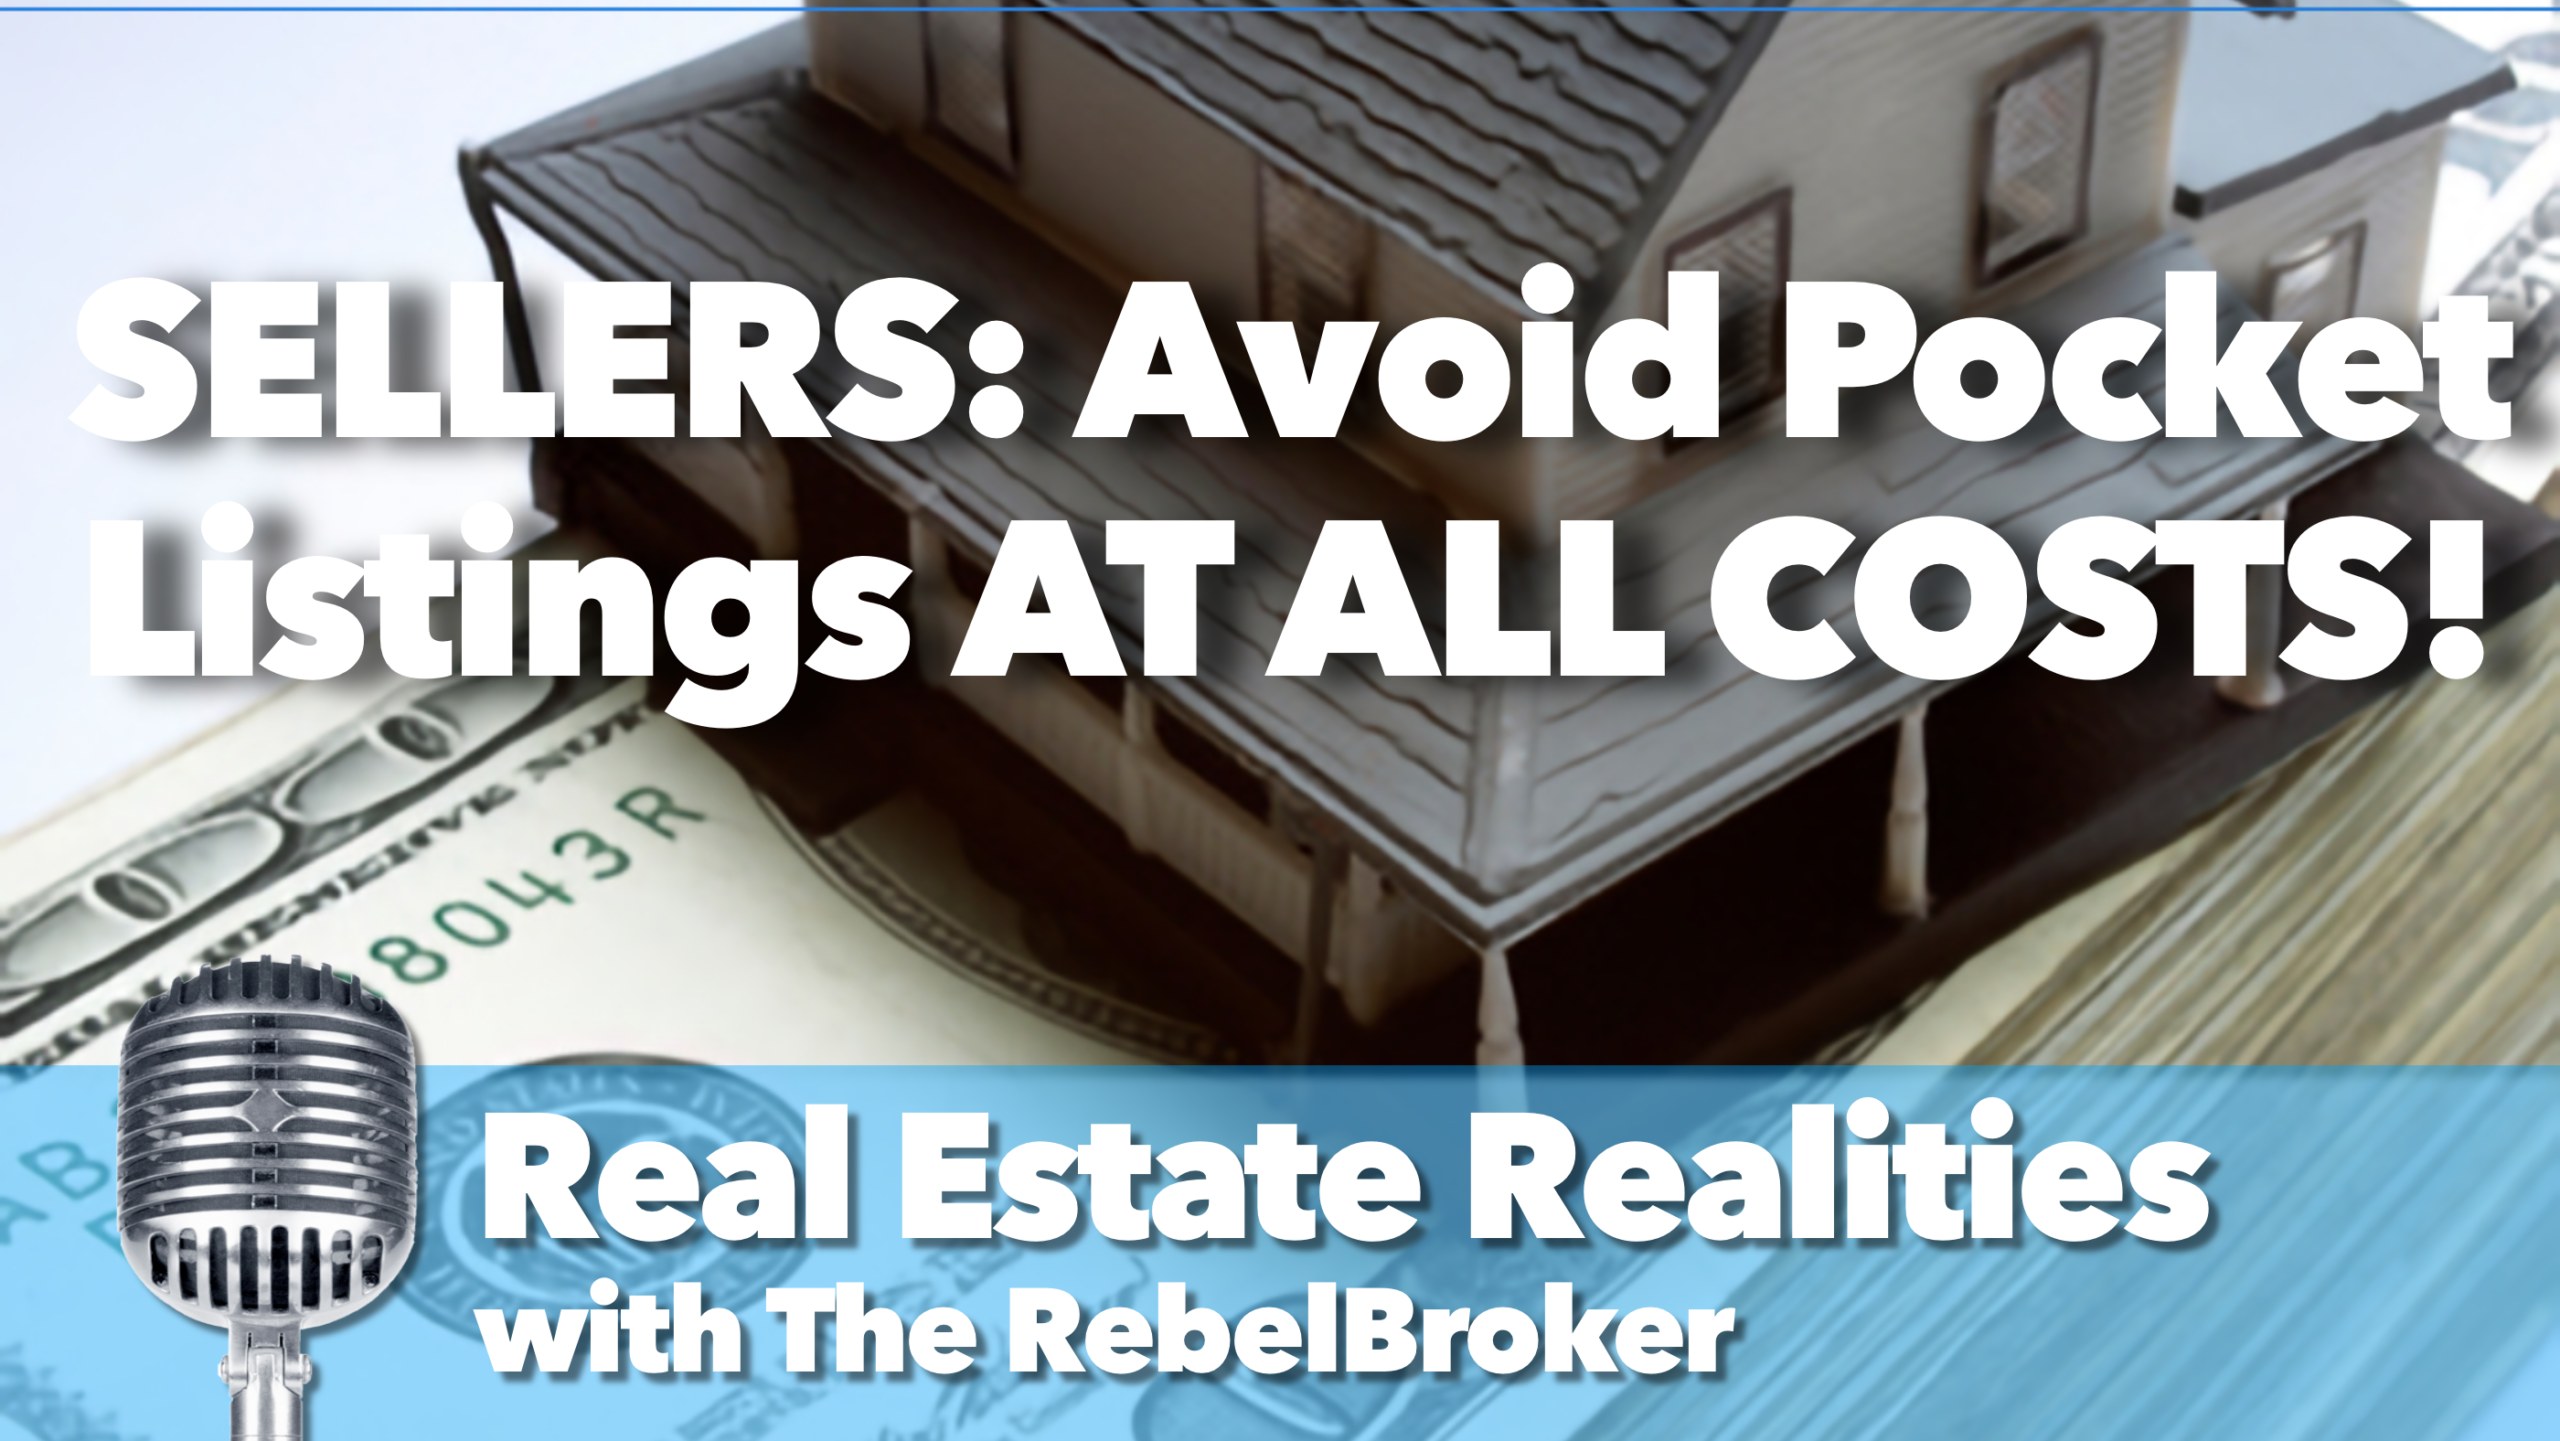 Sellers – Avoid Pocket Listings At All Costs!